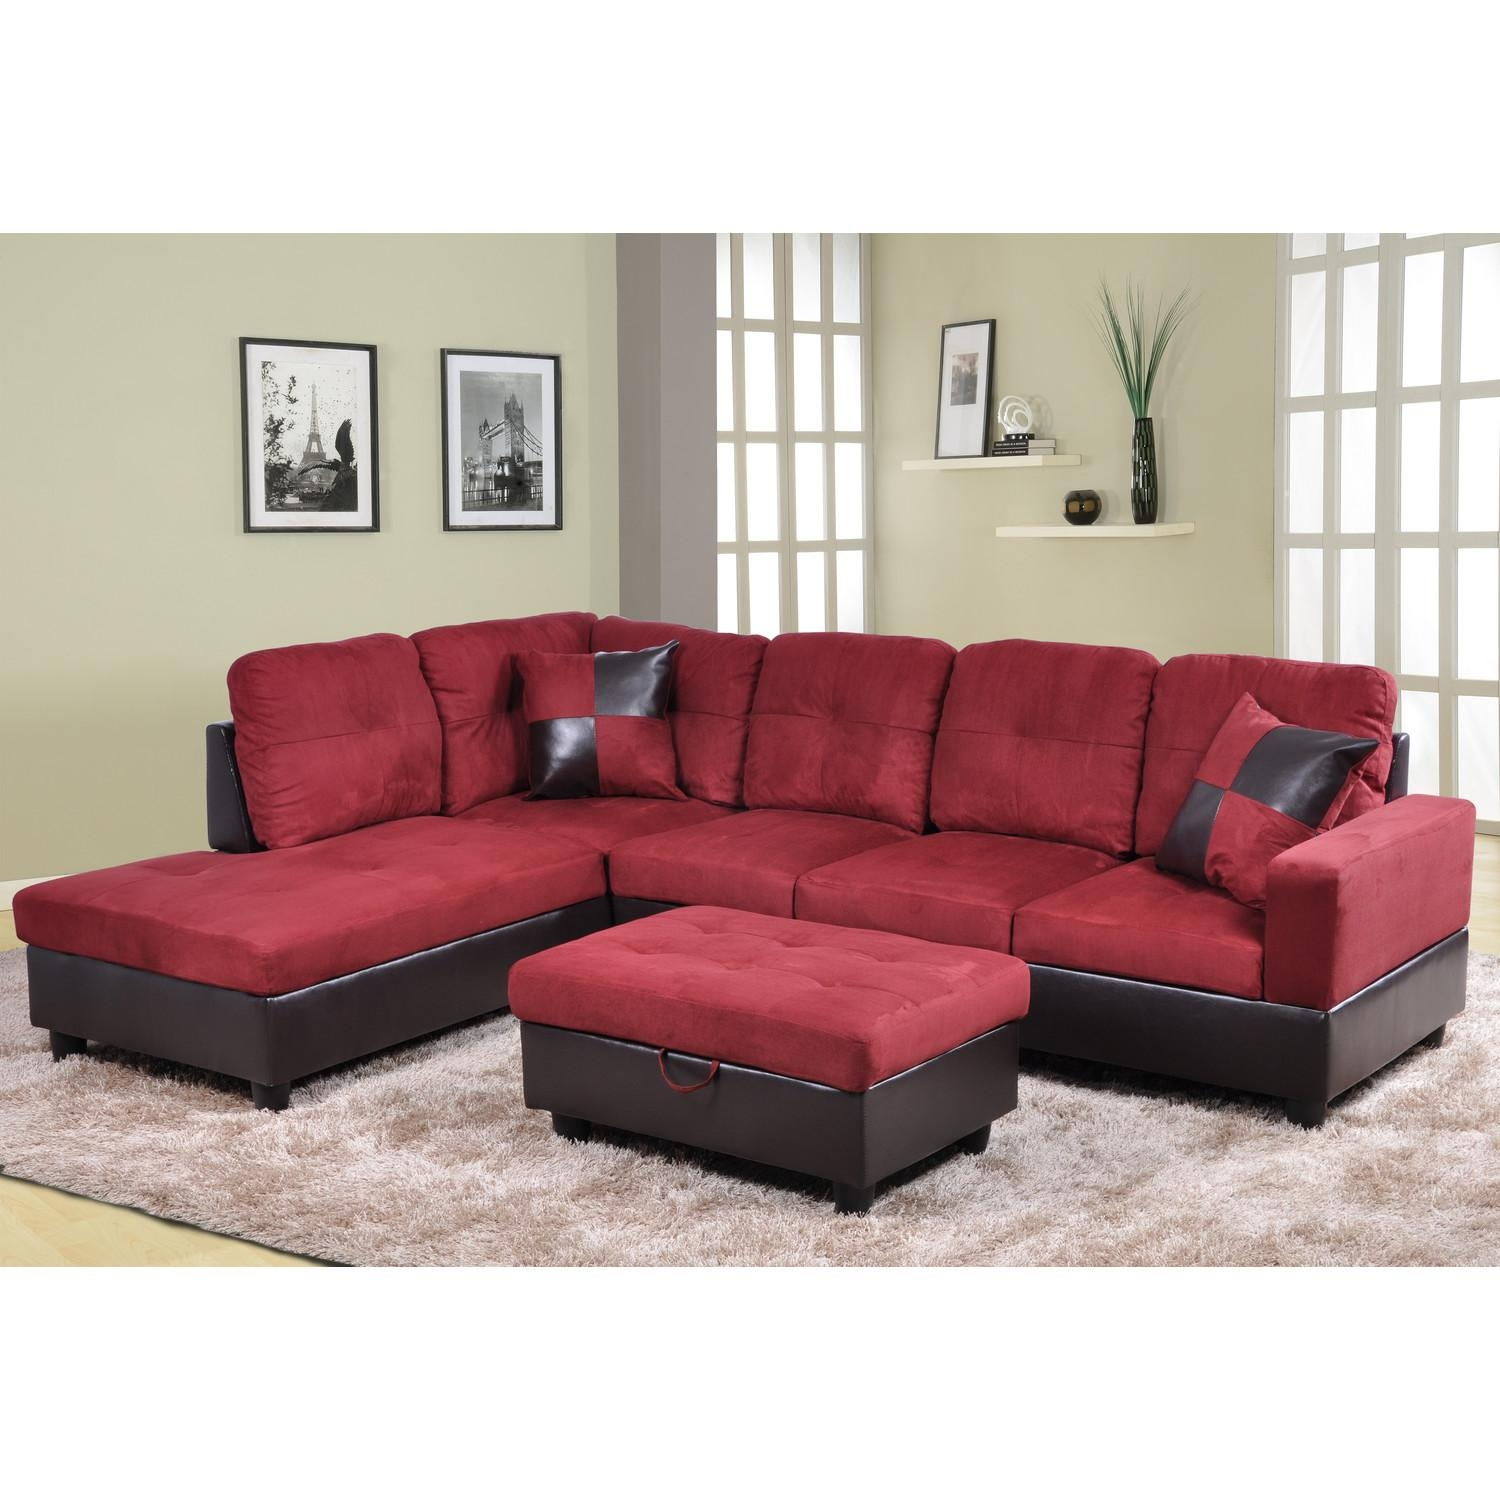 Furniture: Beautiful Sectional Sofas Cheap For Living Room Pertaining To Cheap Red Sofas (Image 6 of 20)